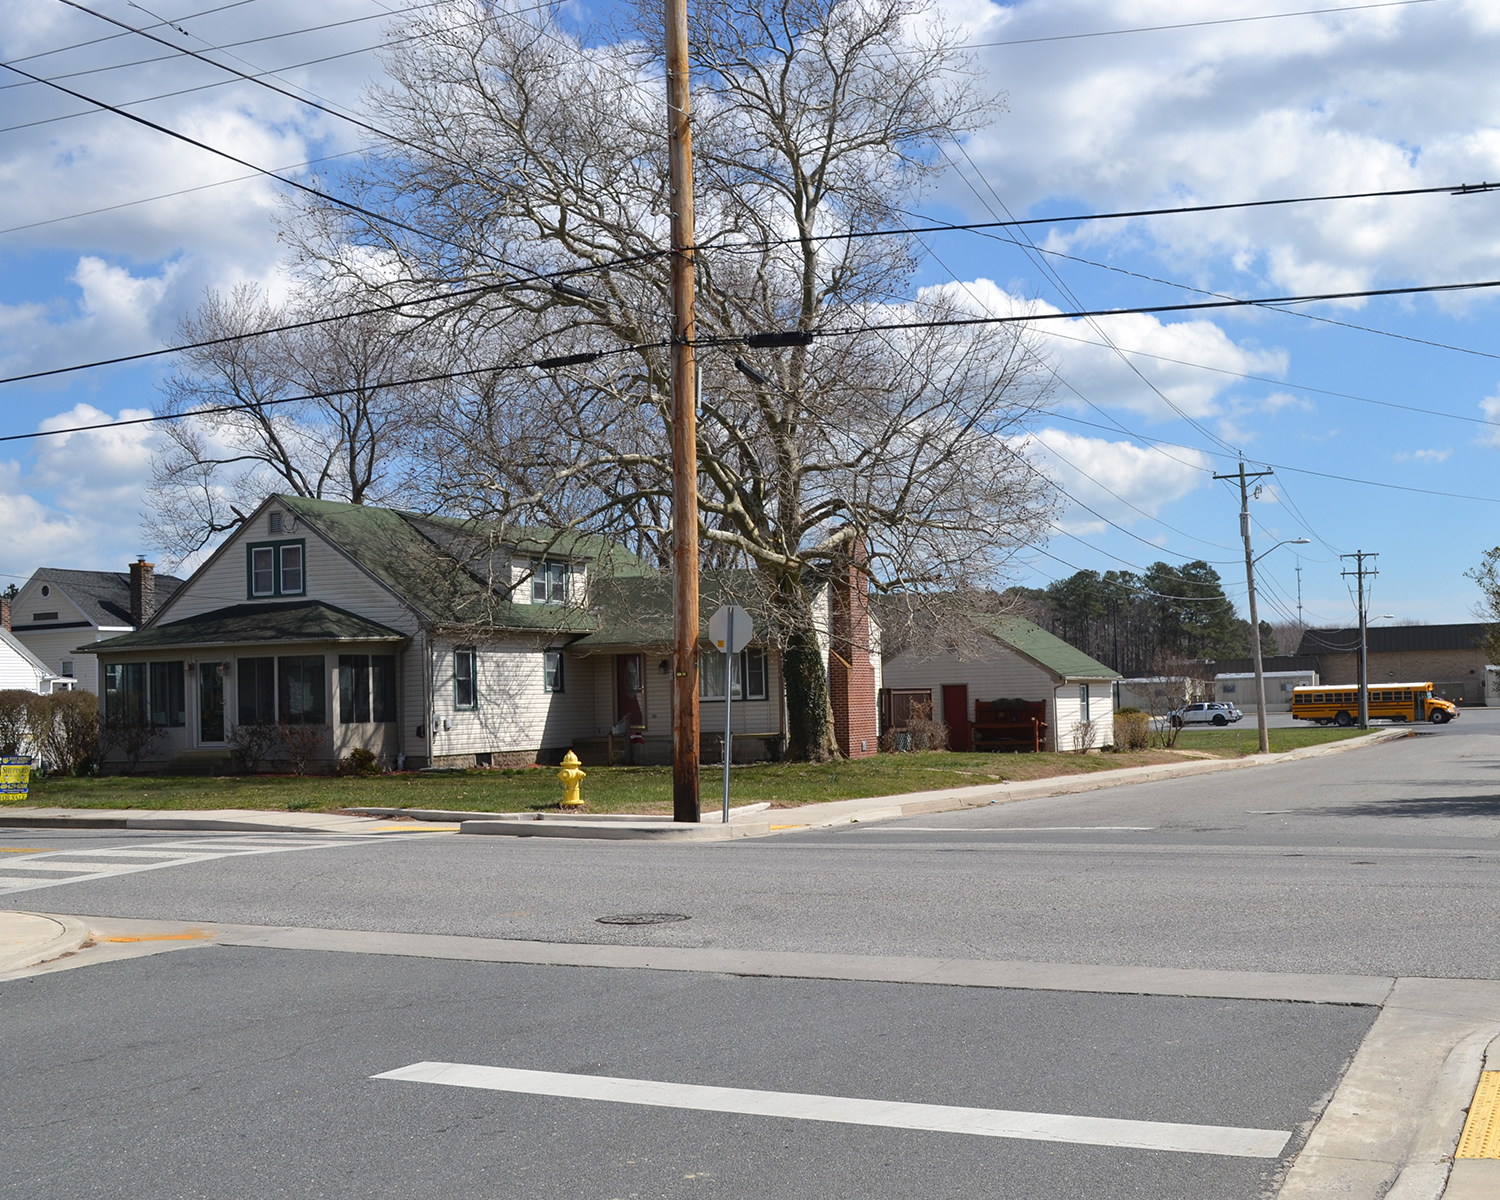 Recovery House Pitched For Berlin; Town Council Wants Neighborhood Input On Proposal